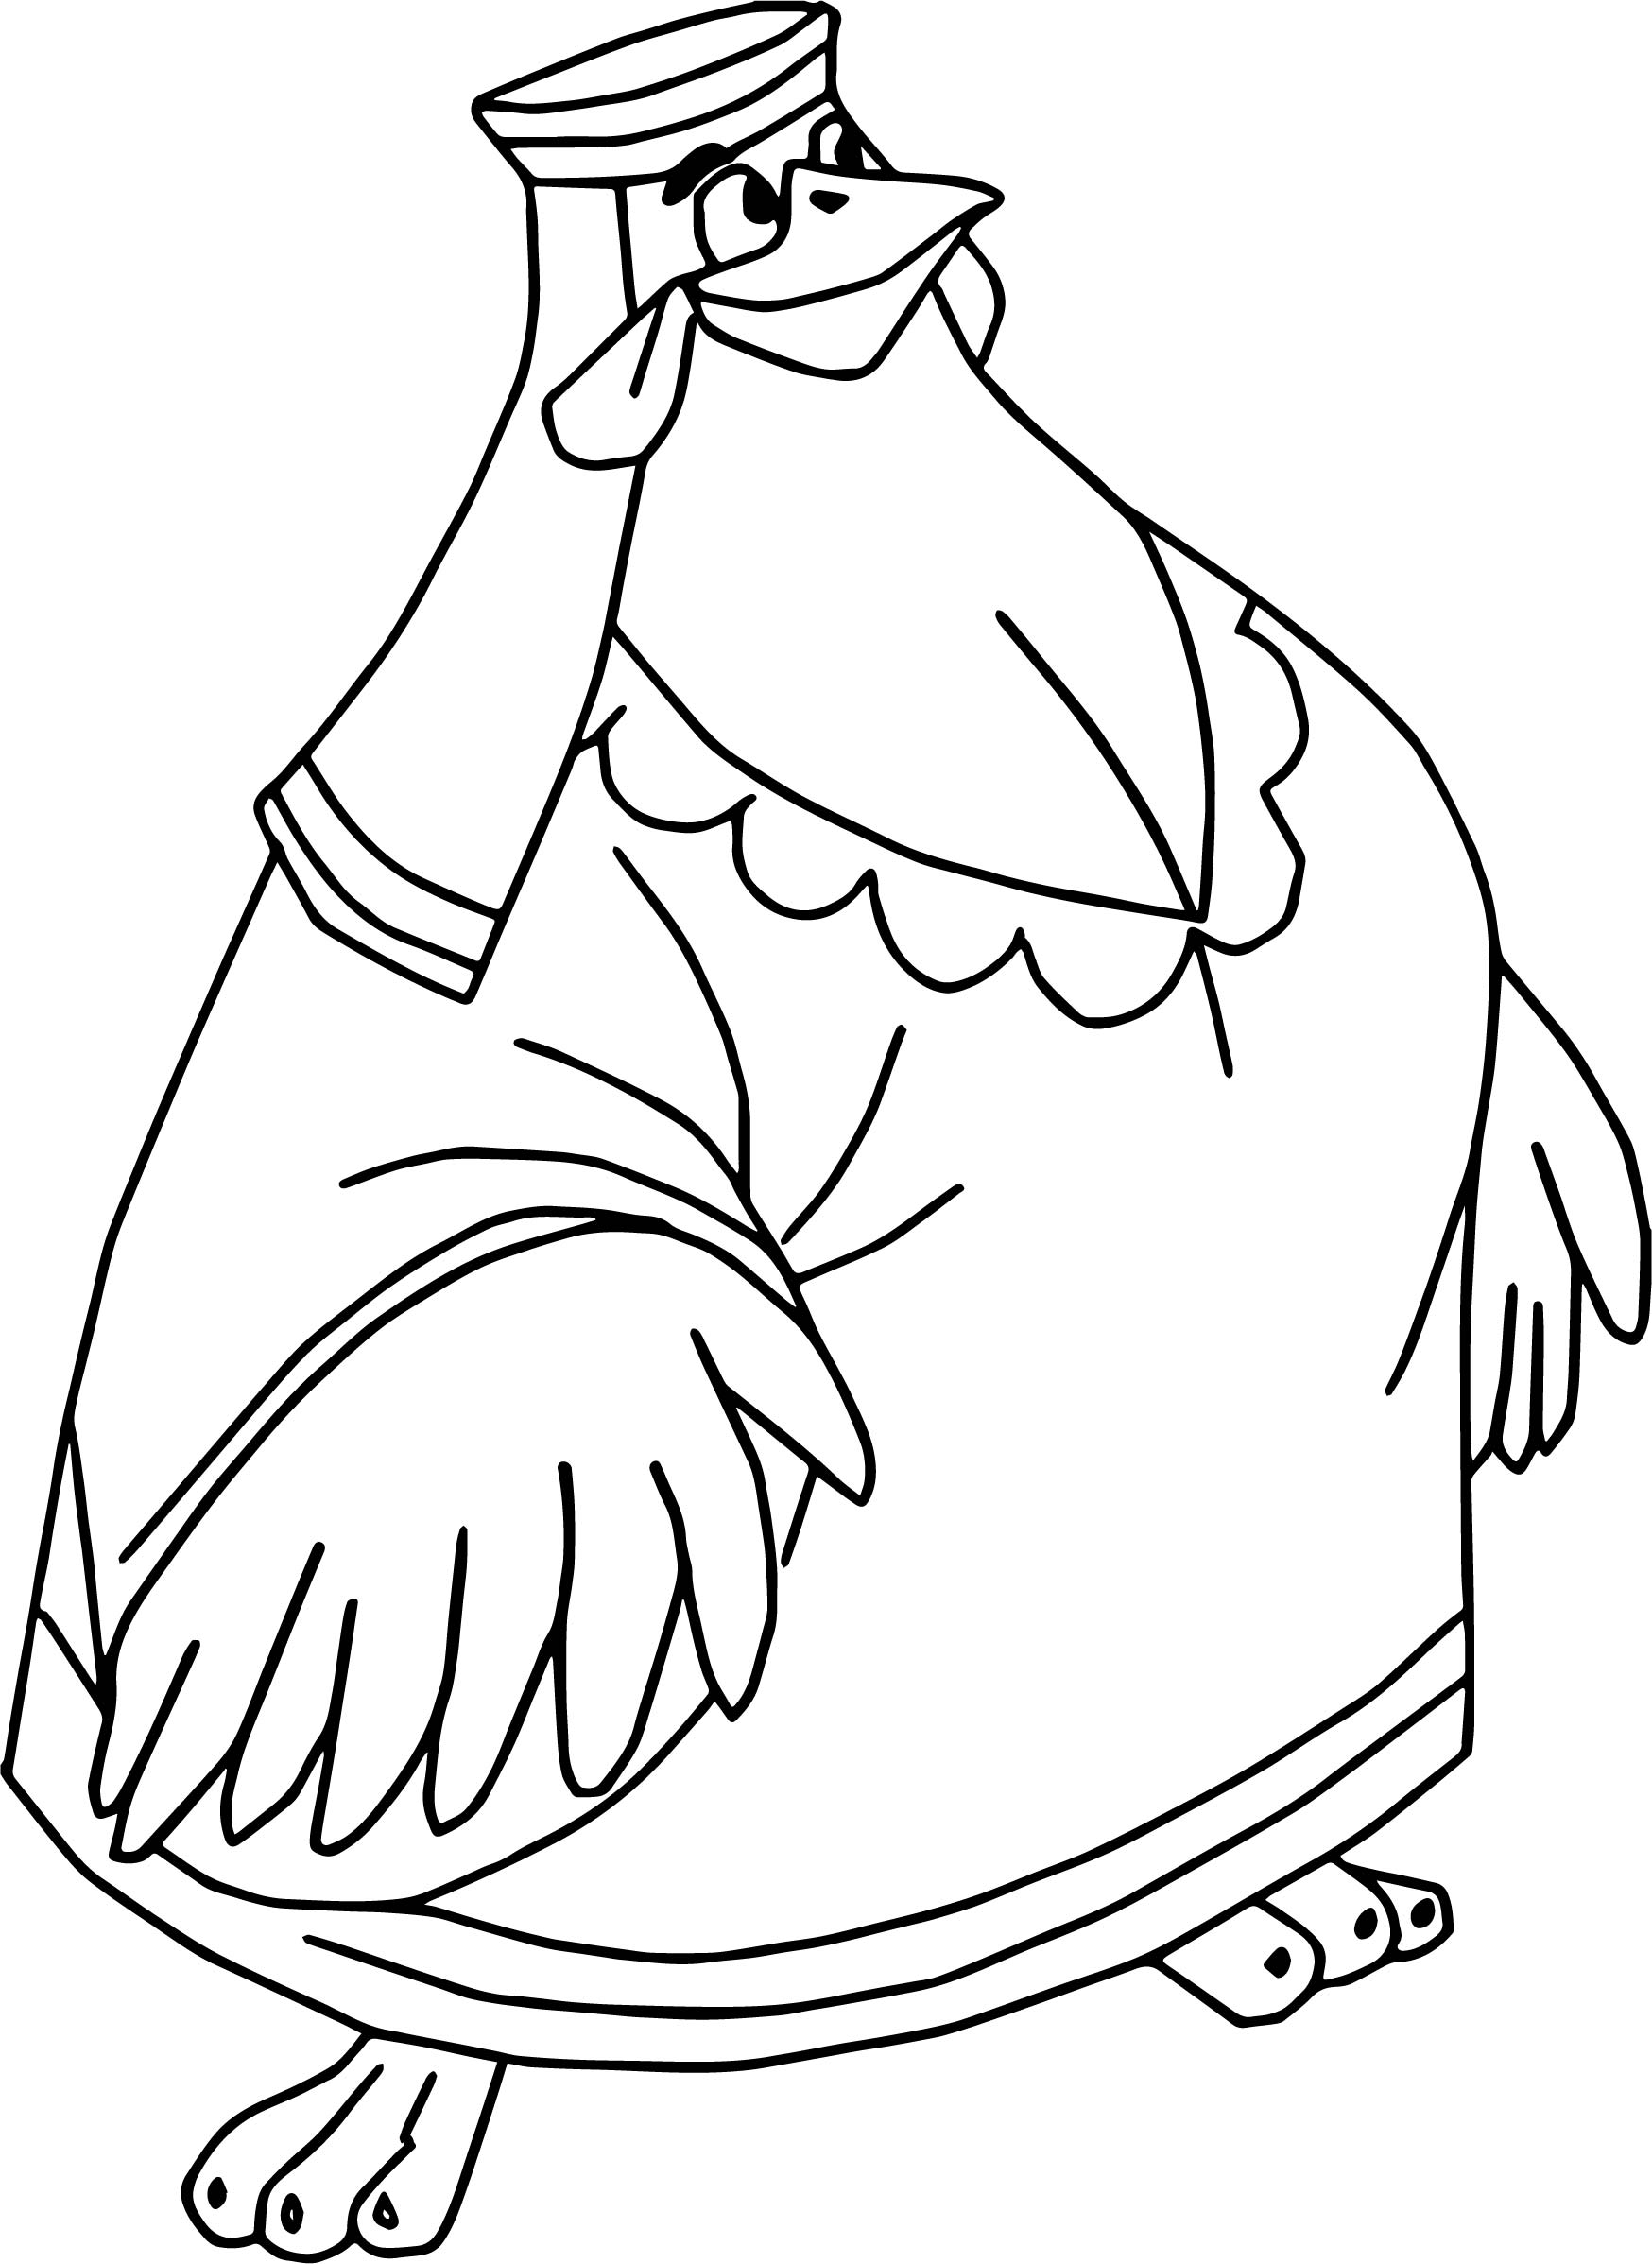 Robin Hood Lady Kluck Hen Coloring Page | Wecoloringpage.com